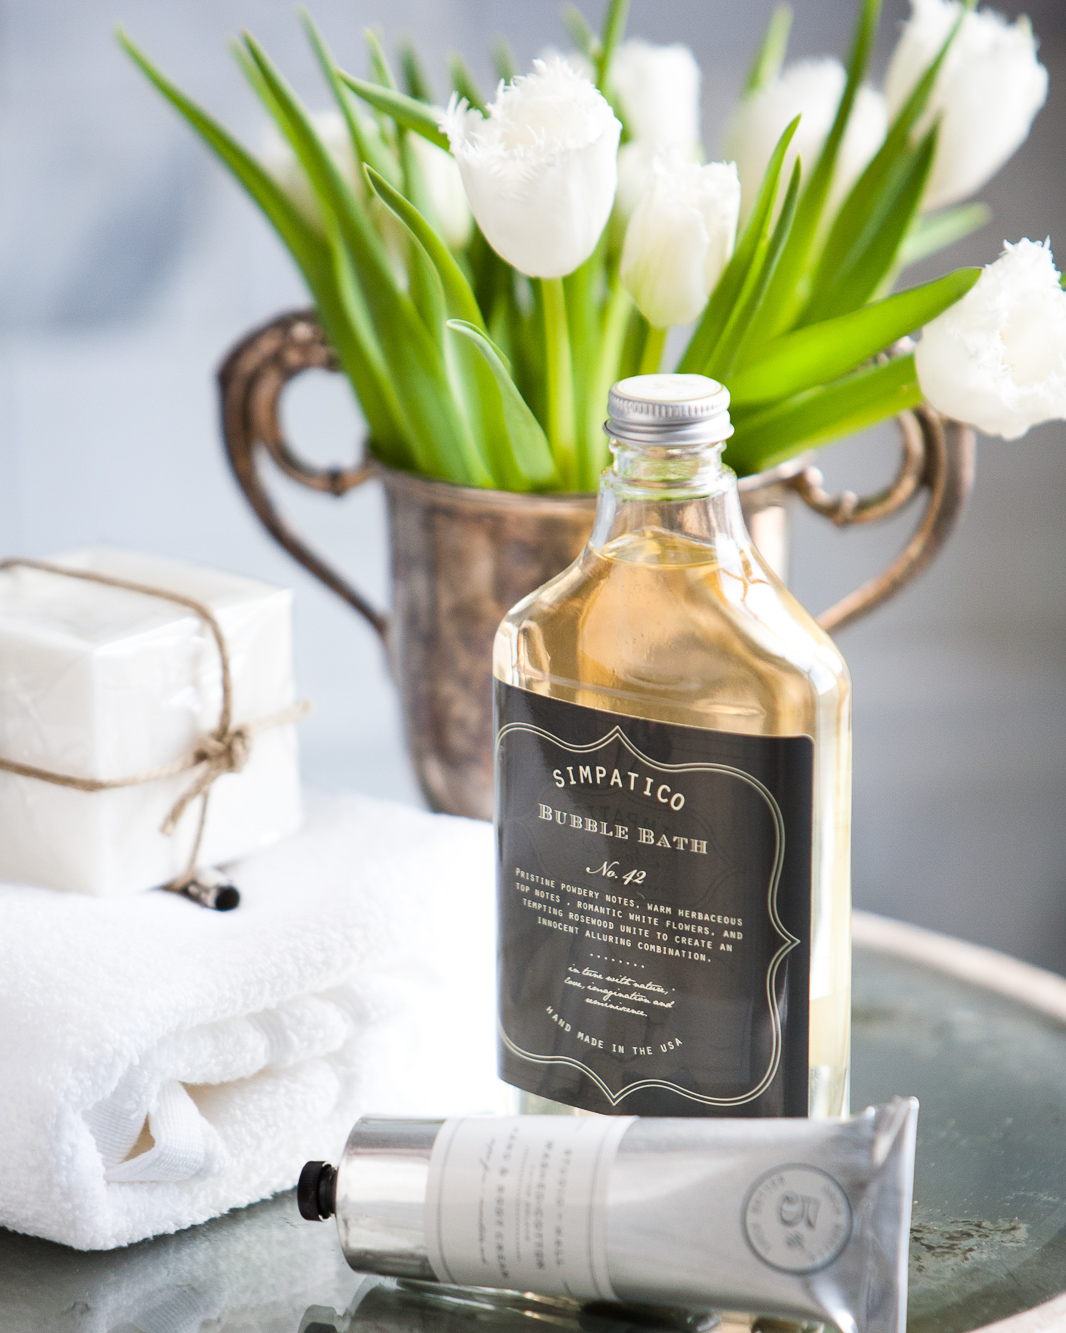 Bottle of Simpatico brand bubble bath on a tray with soap and a towel and tulips in the background.